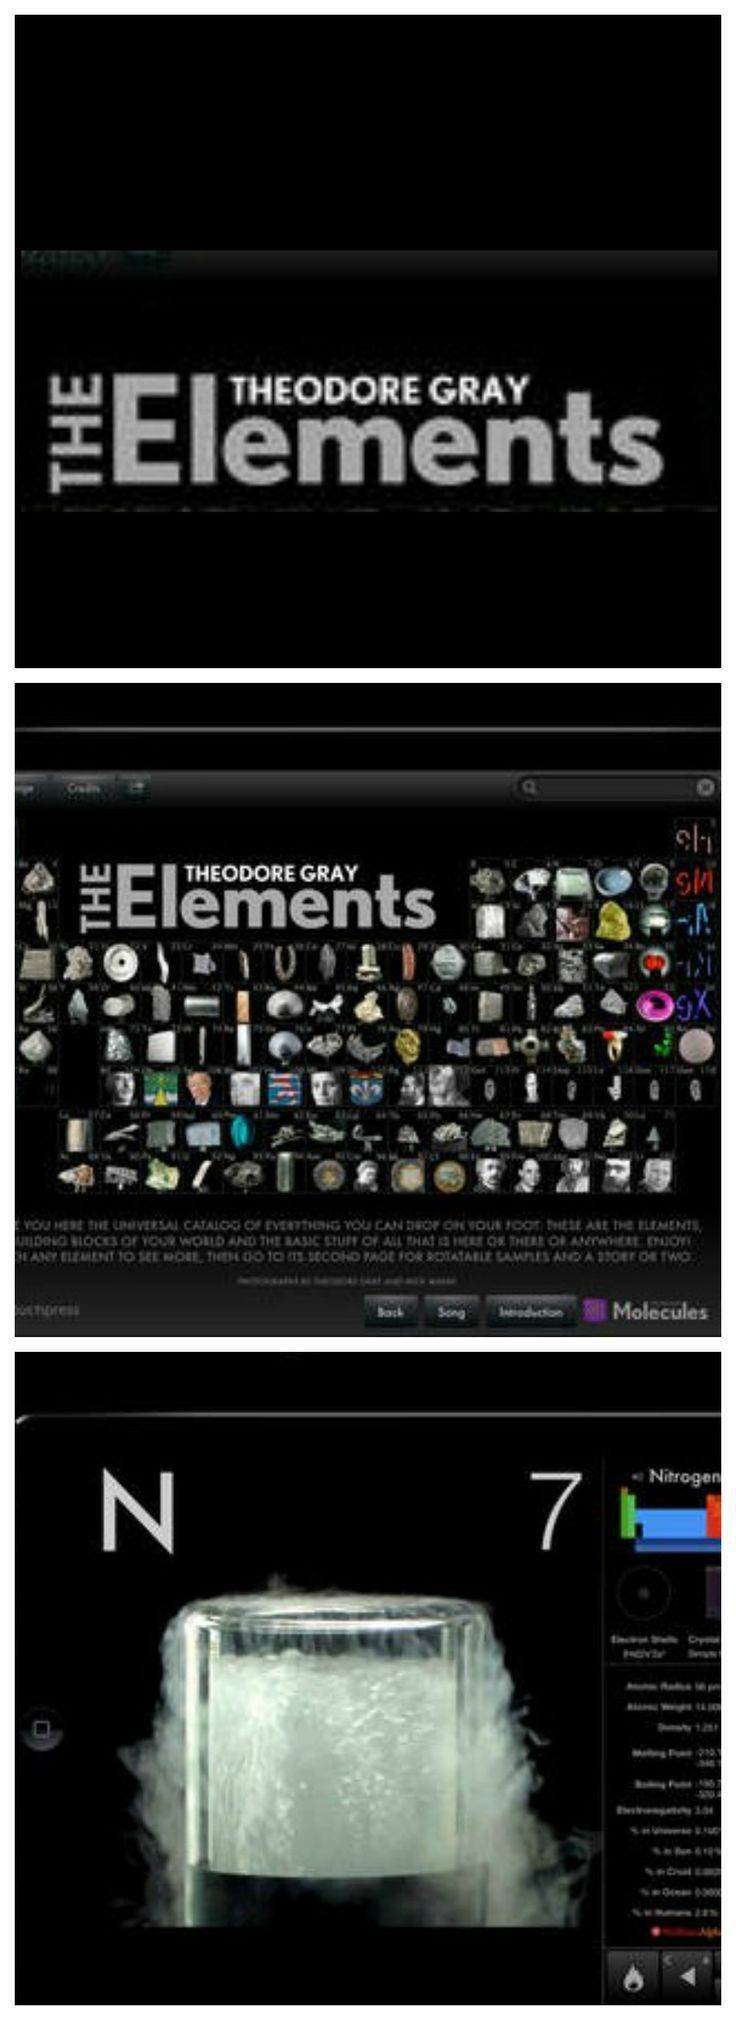 Bring The Periodic Table To Life: We Review The Elements App